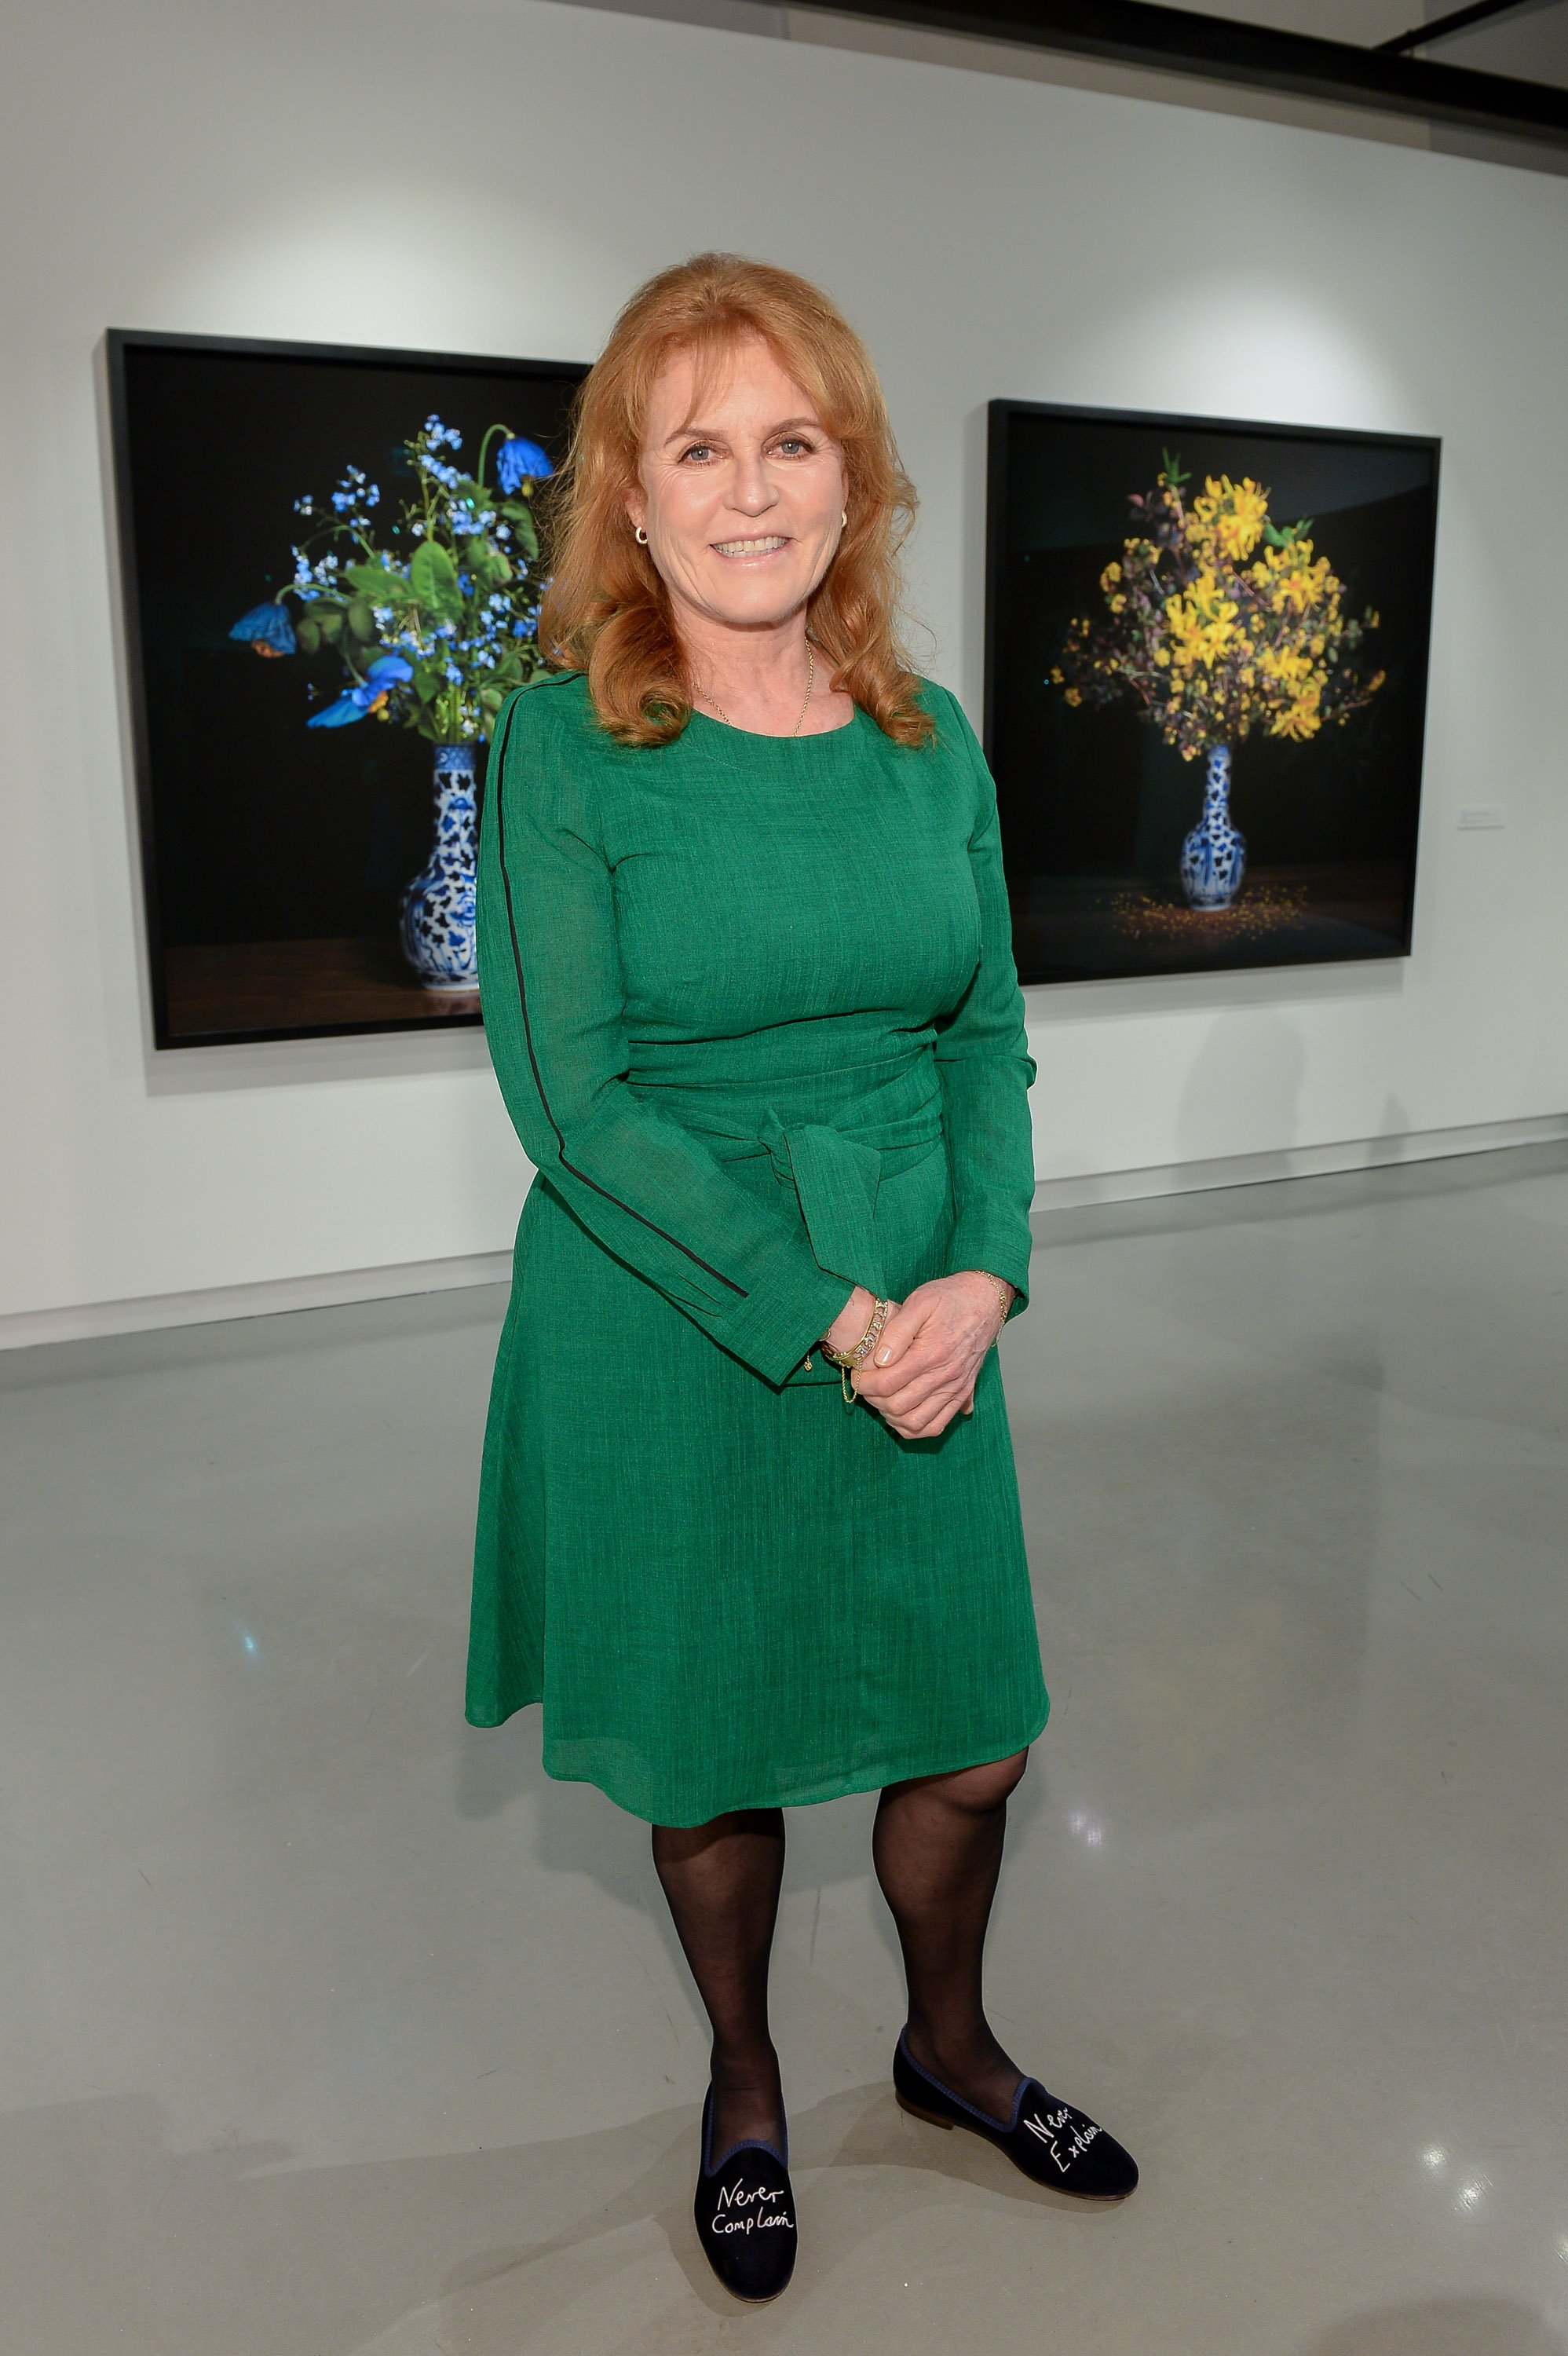 Sarah Ferguson visits the Onsite Gallery in Toronto on Wednesday, May 8, 2019 | Photo: Getty Images